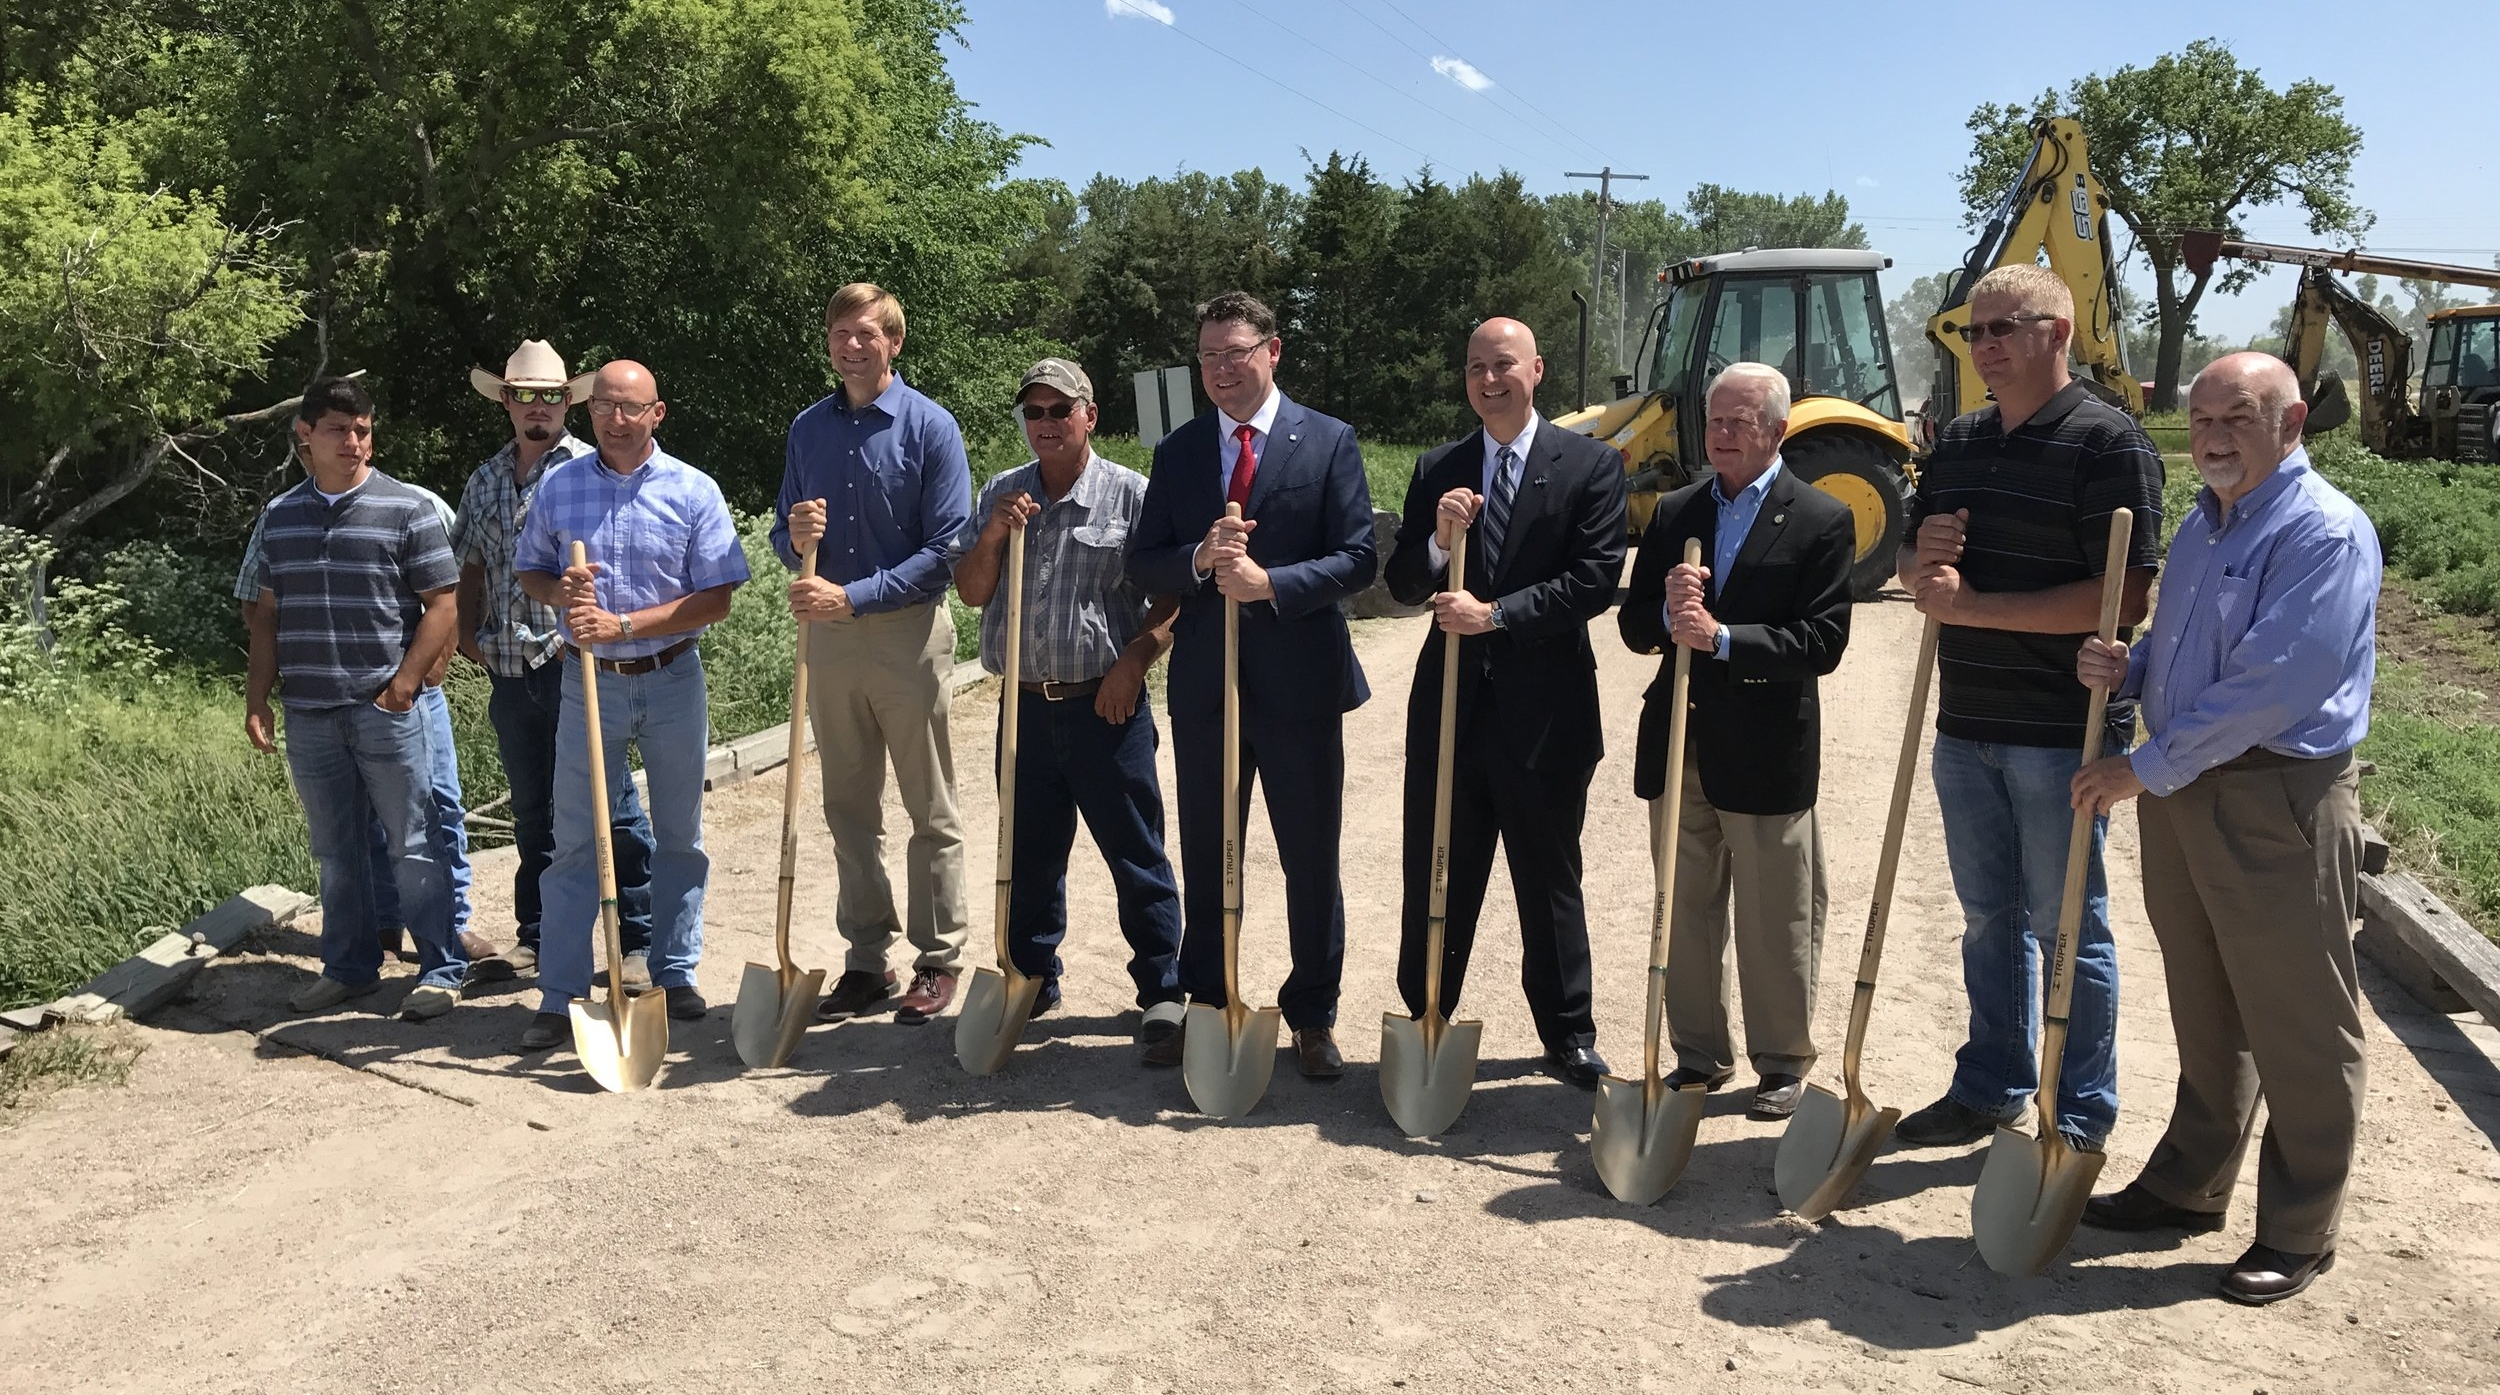 Custer County Ground Breaking Ceremony (from left - members of Custer Co Bridge Crew; Chris Jacobsen, Highway Superintendent; Mark Traynowicz, State Engineer; Larry Catlett, Bridge Foreman; Kyle Schneweis, NDOR Director; NE Governor Pete Ricketts; Senator Matt Williams; Barry Fox, Board Chairman; Larry Dix, Executive Director NACO.)